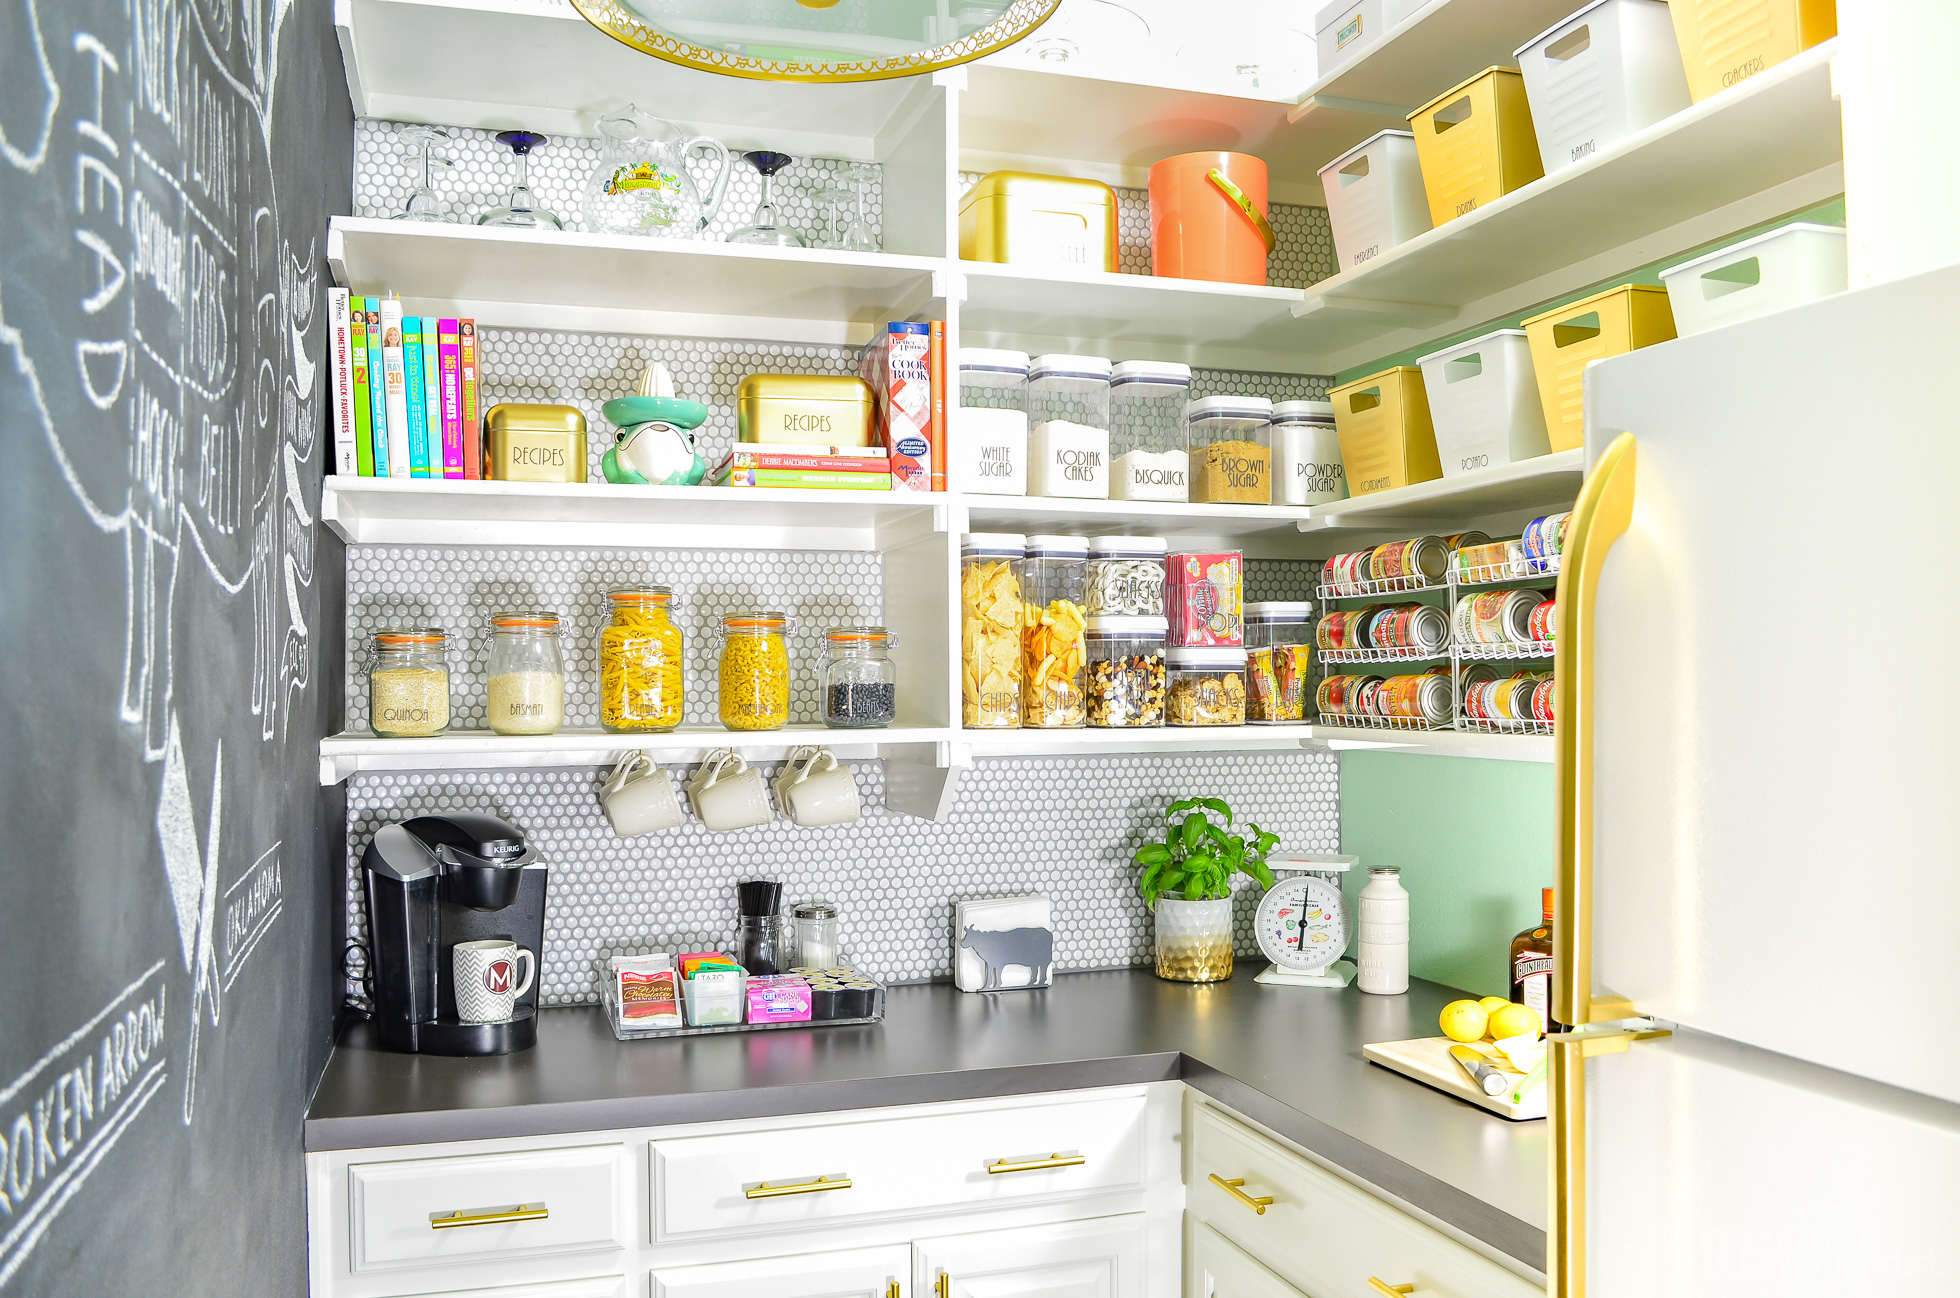 A bright green and gold pantry with food